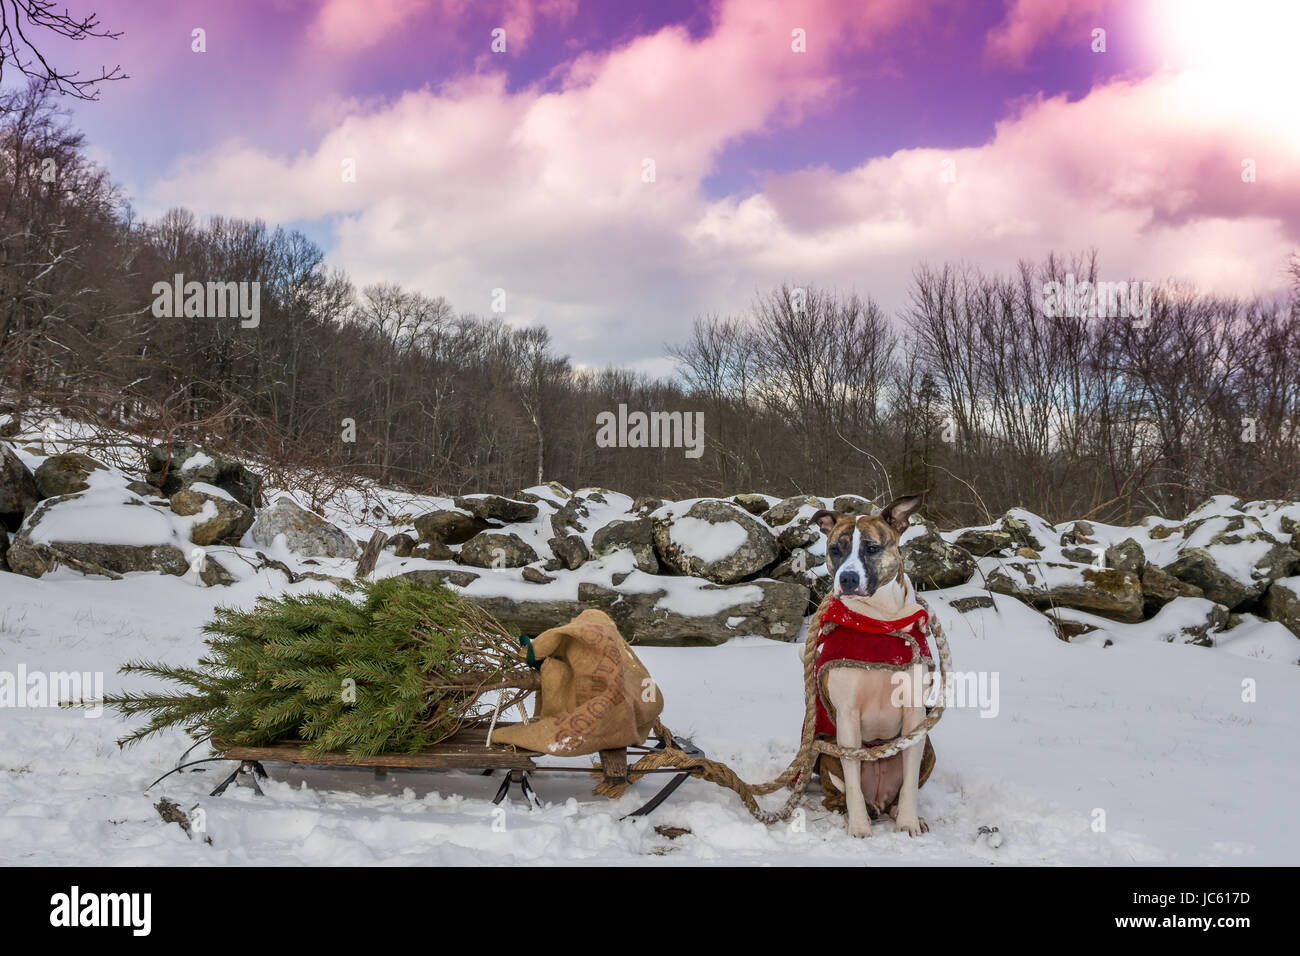 A Cute Dog Pulling A Sled And A Christmas Tree Stock Photo